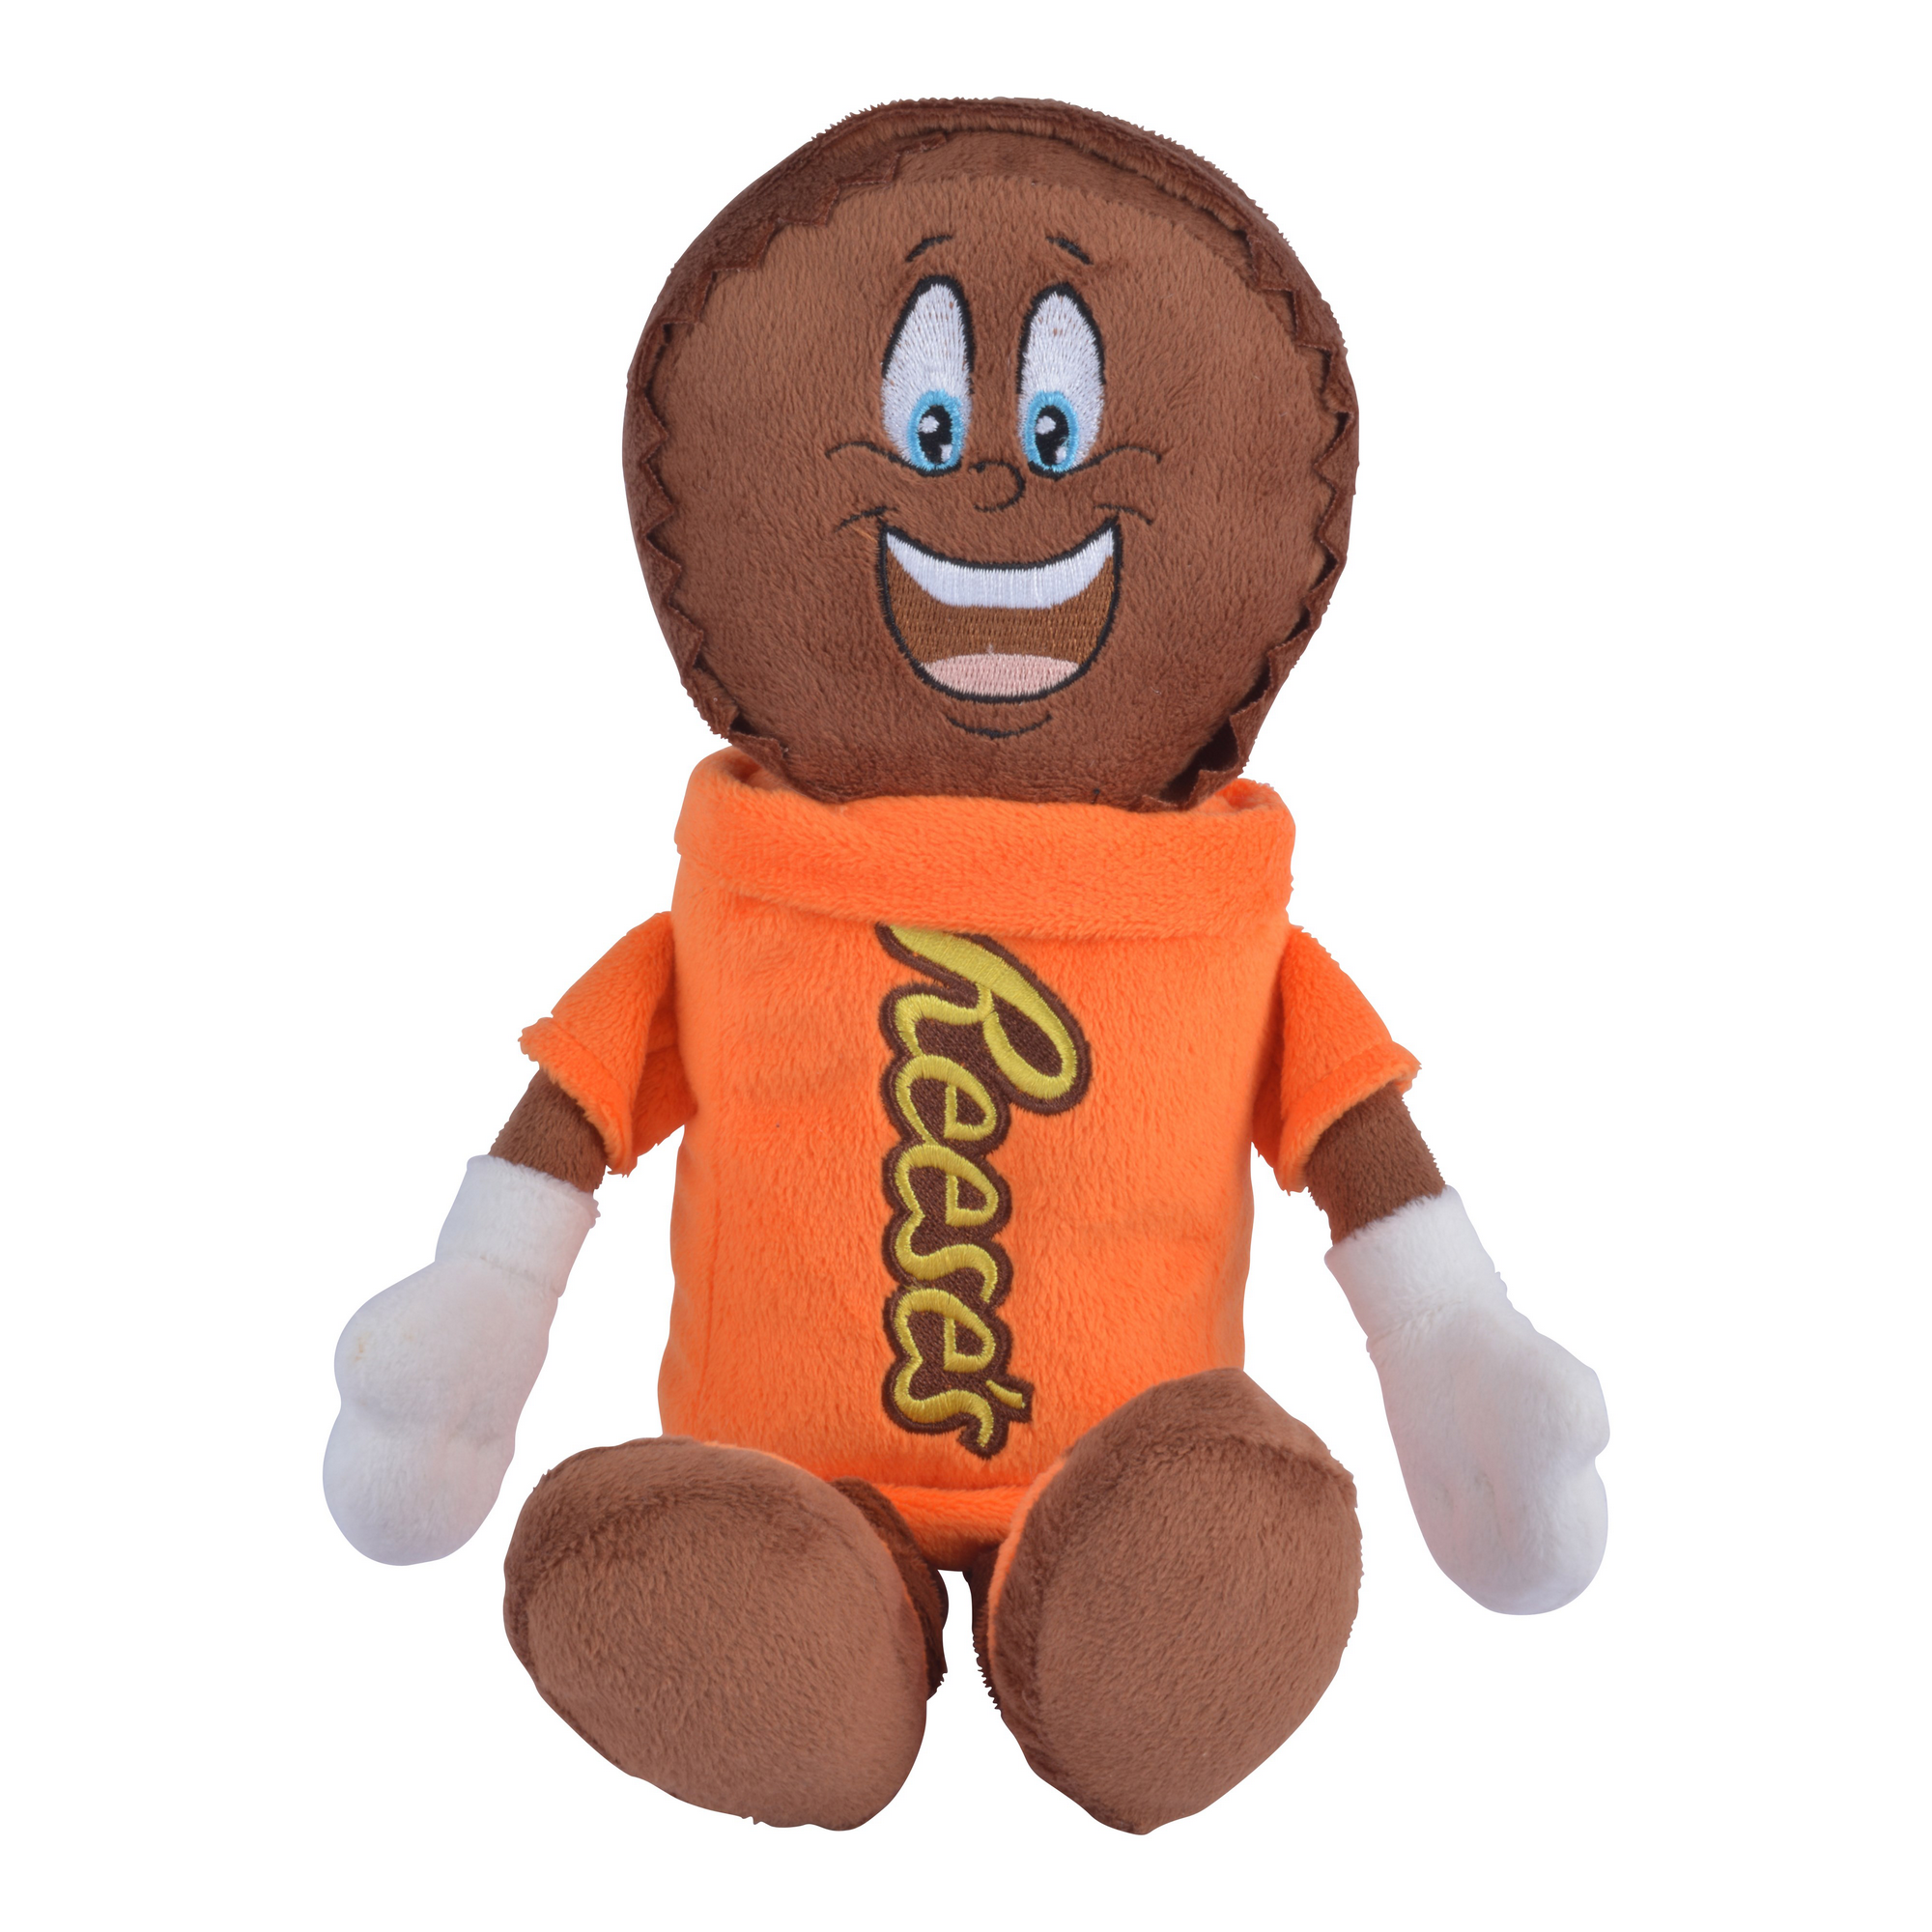 Smores Stuffed Animal, Reese S Character Plush Toy Hershey S